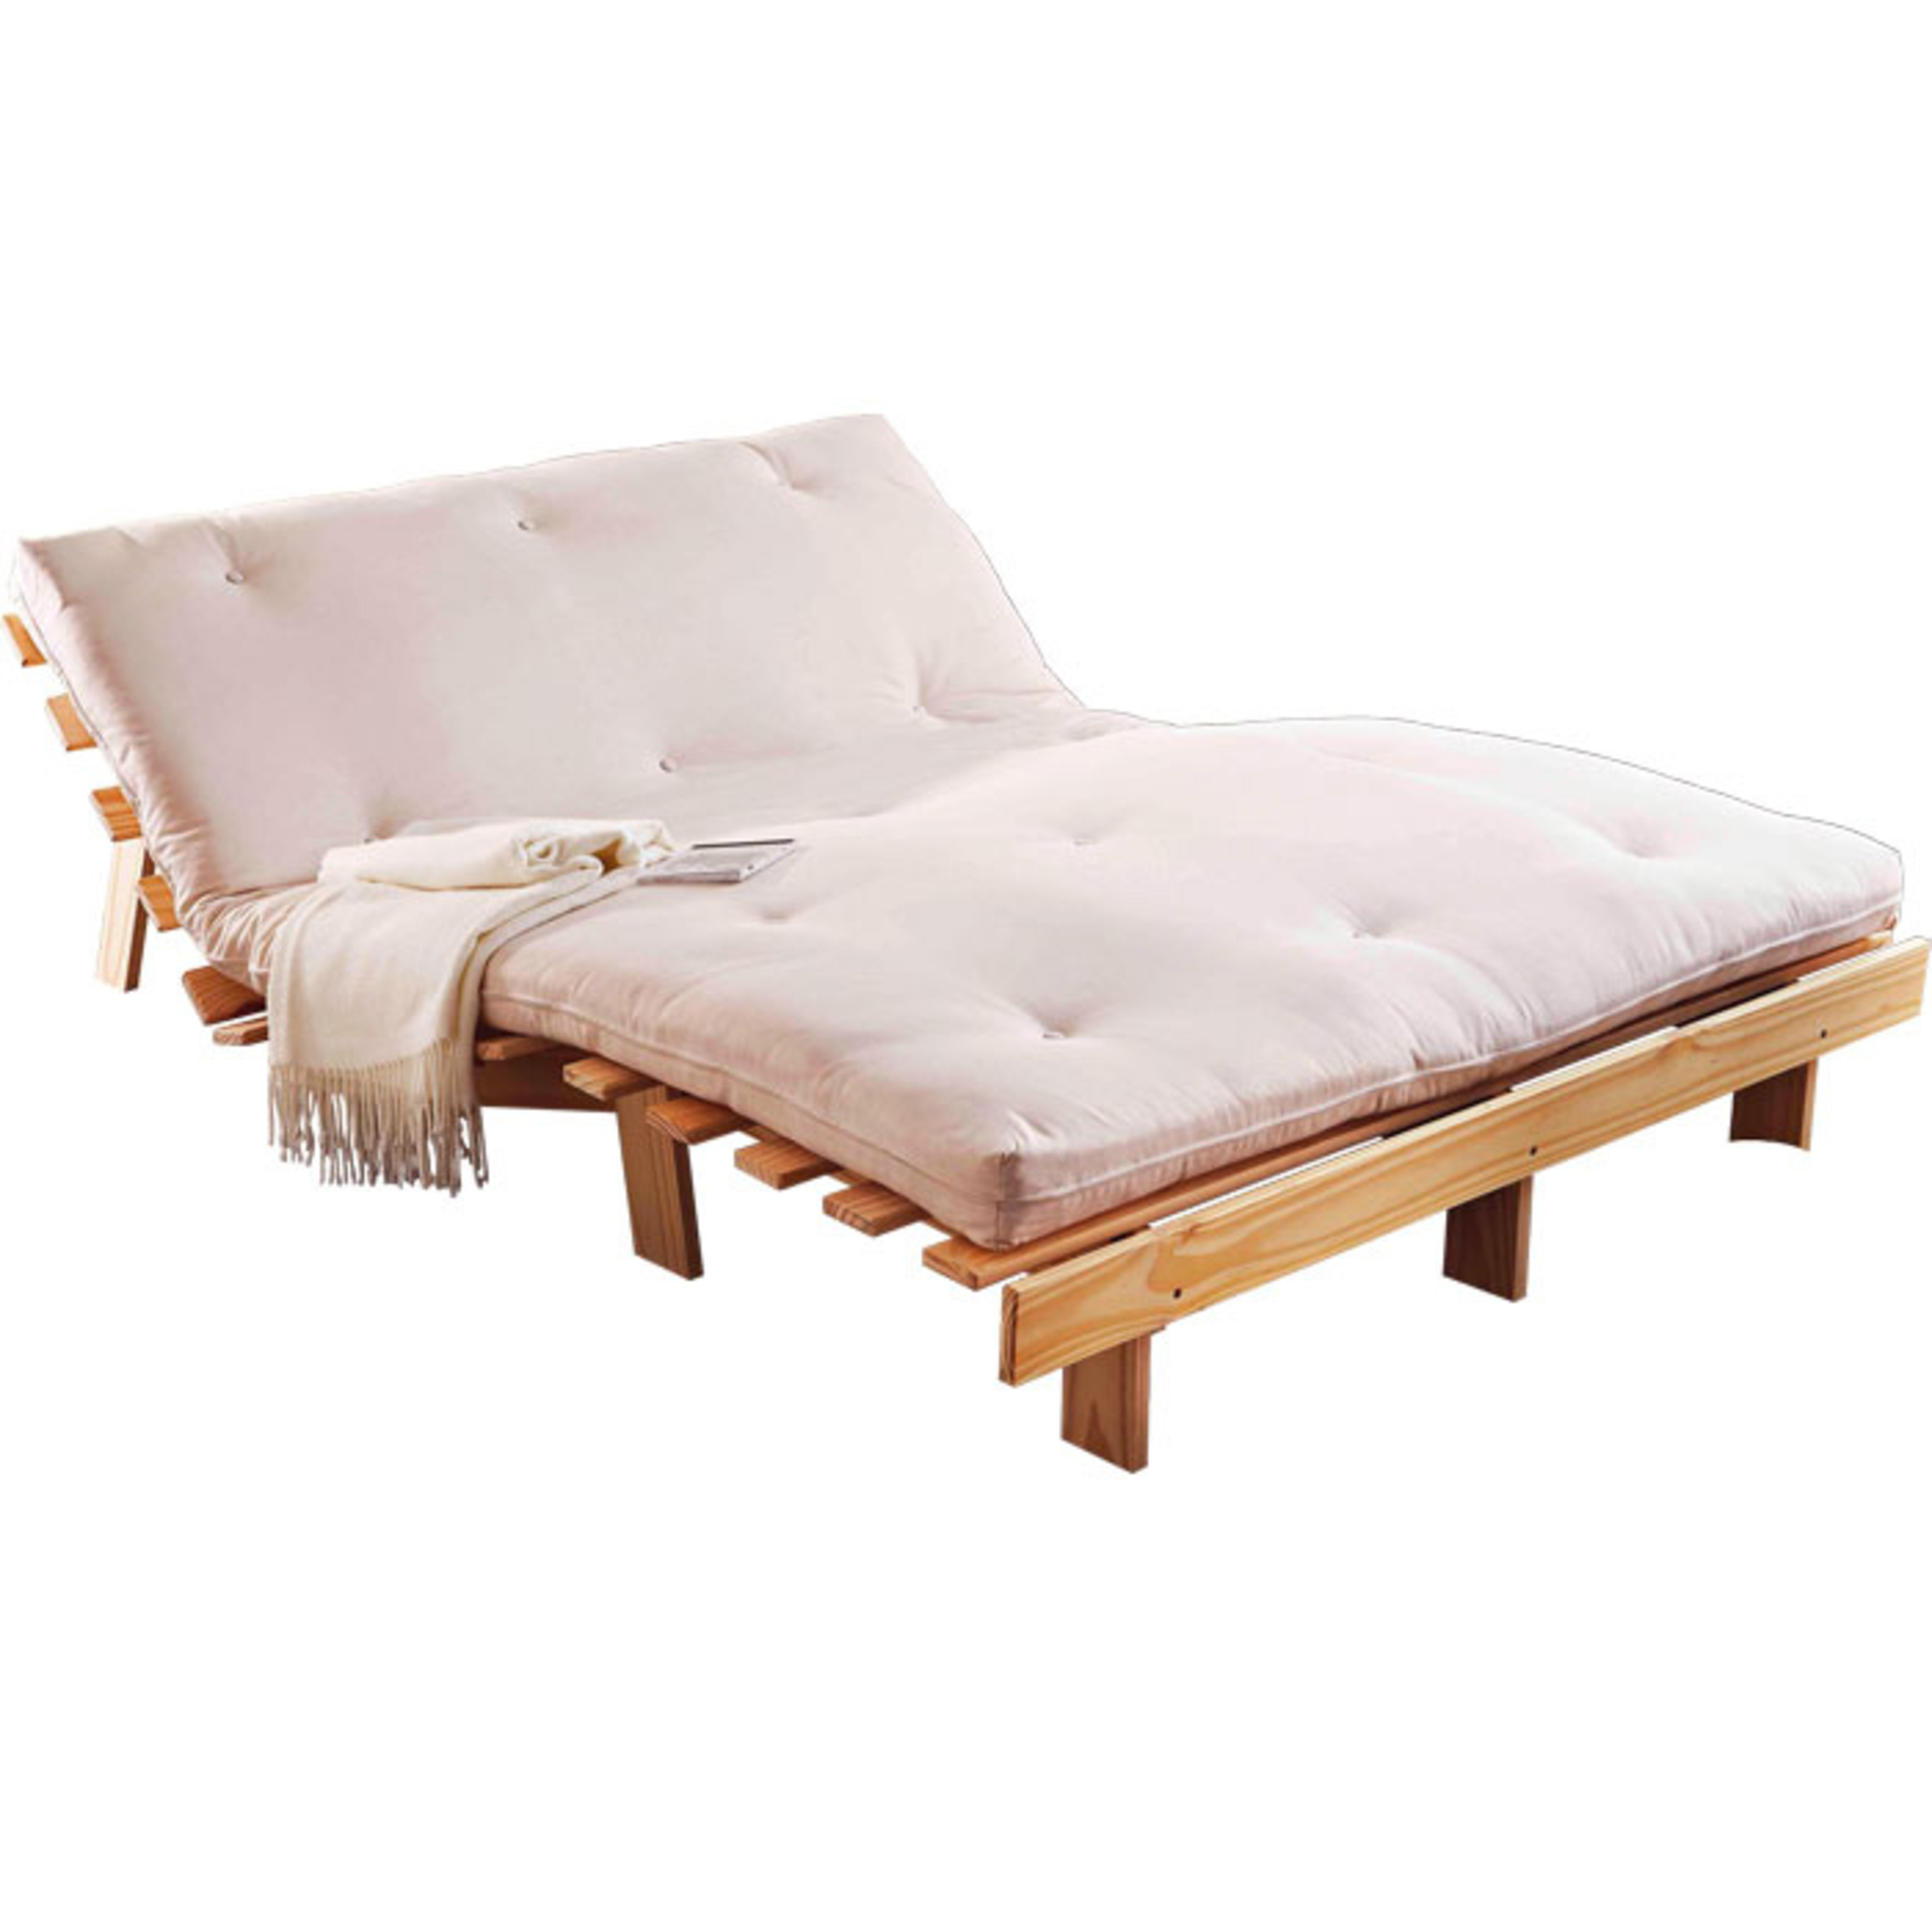 Canap lit futon 160x200 for Canape lit ikea 2 places